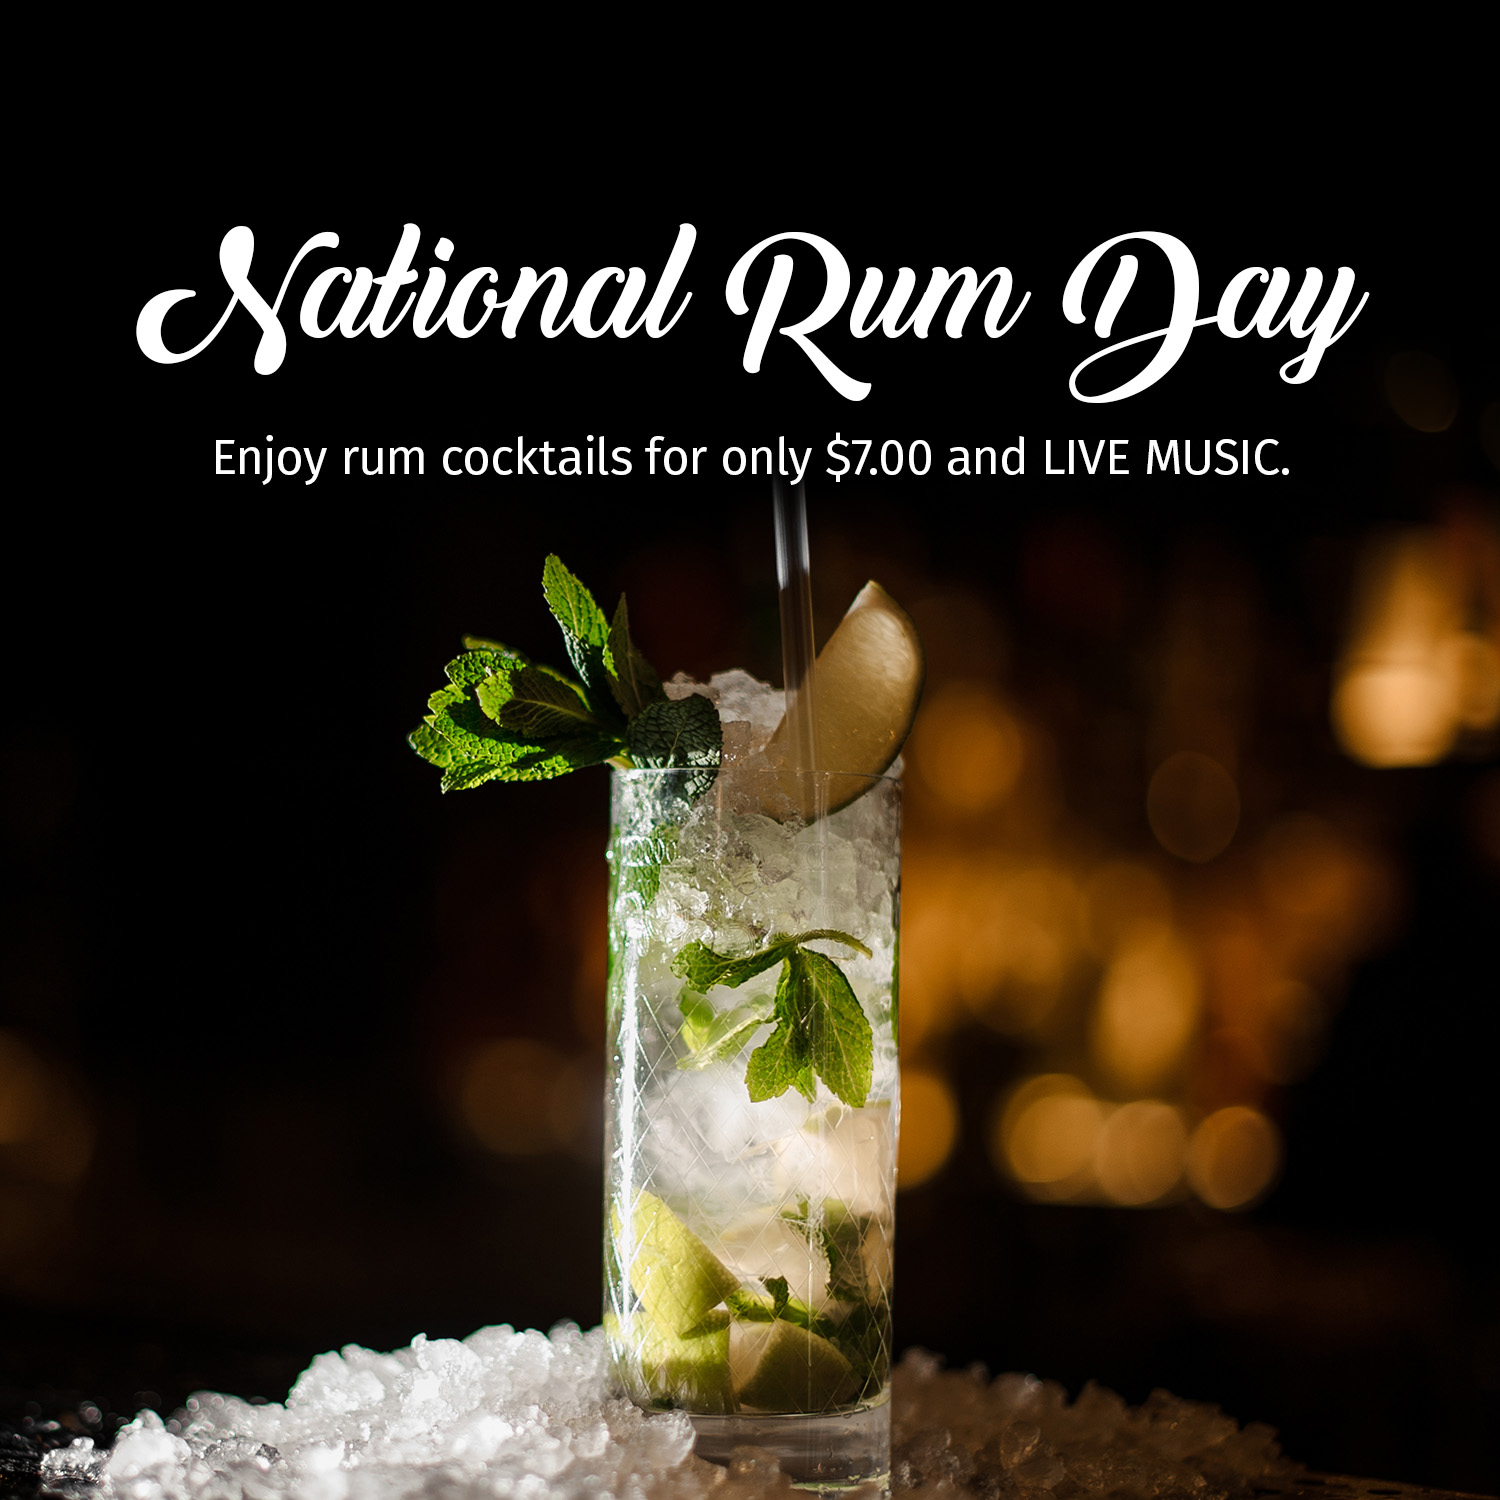 A picture of a Mojito Cocktail to celebrate National Rum Day 2019 at Bottled in Bond.